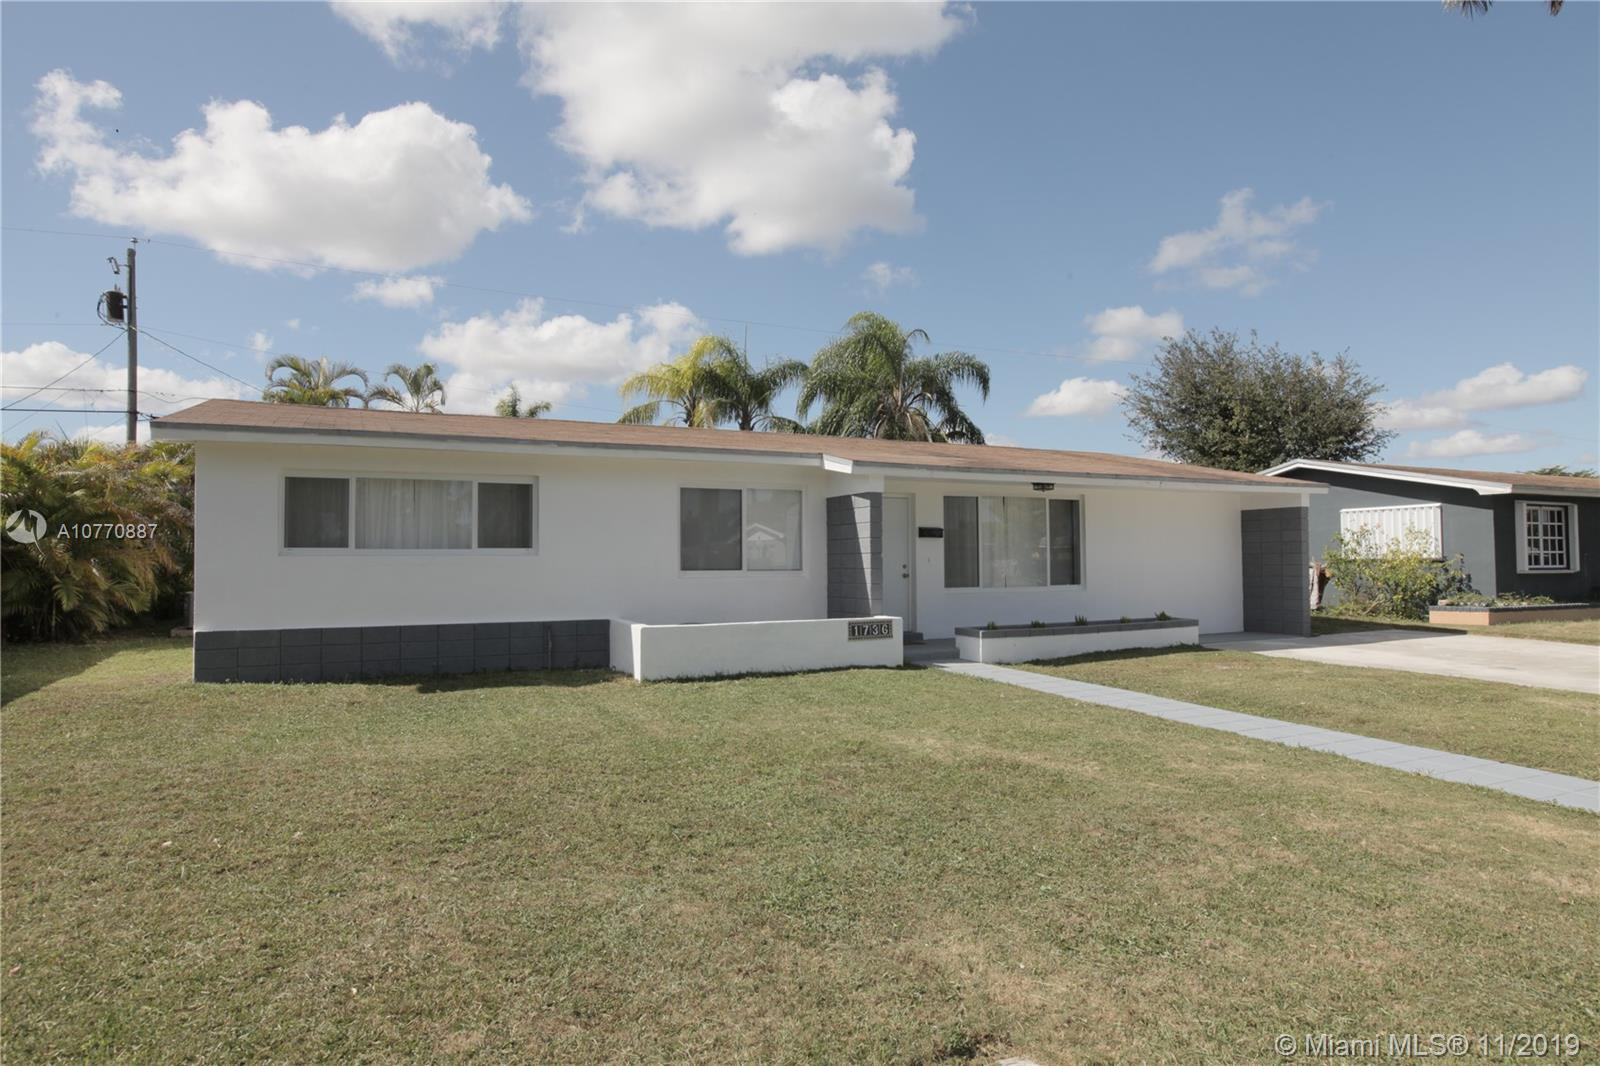 1736 NW 8th Ter, Homestead, FL 33030 - Homestead, FL real estate listing